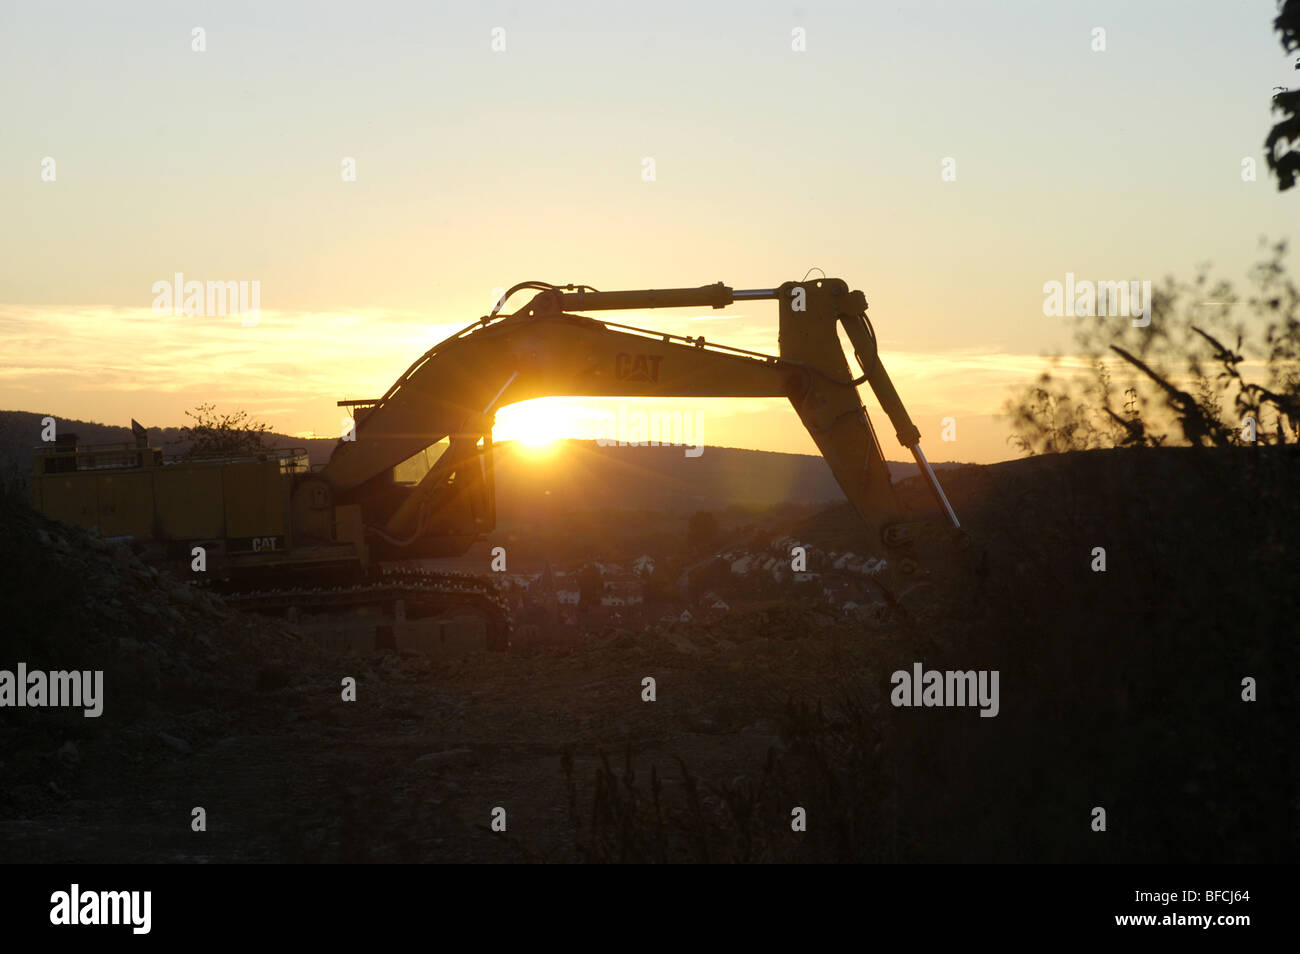 Construction site in the evening sun - Stock Image